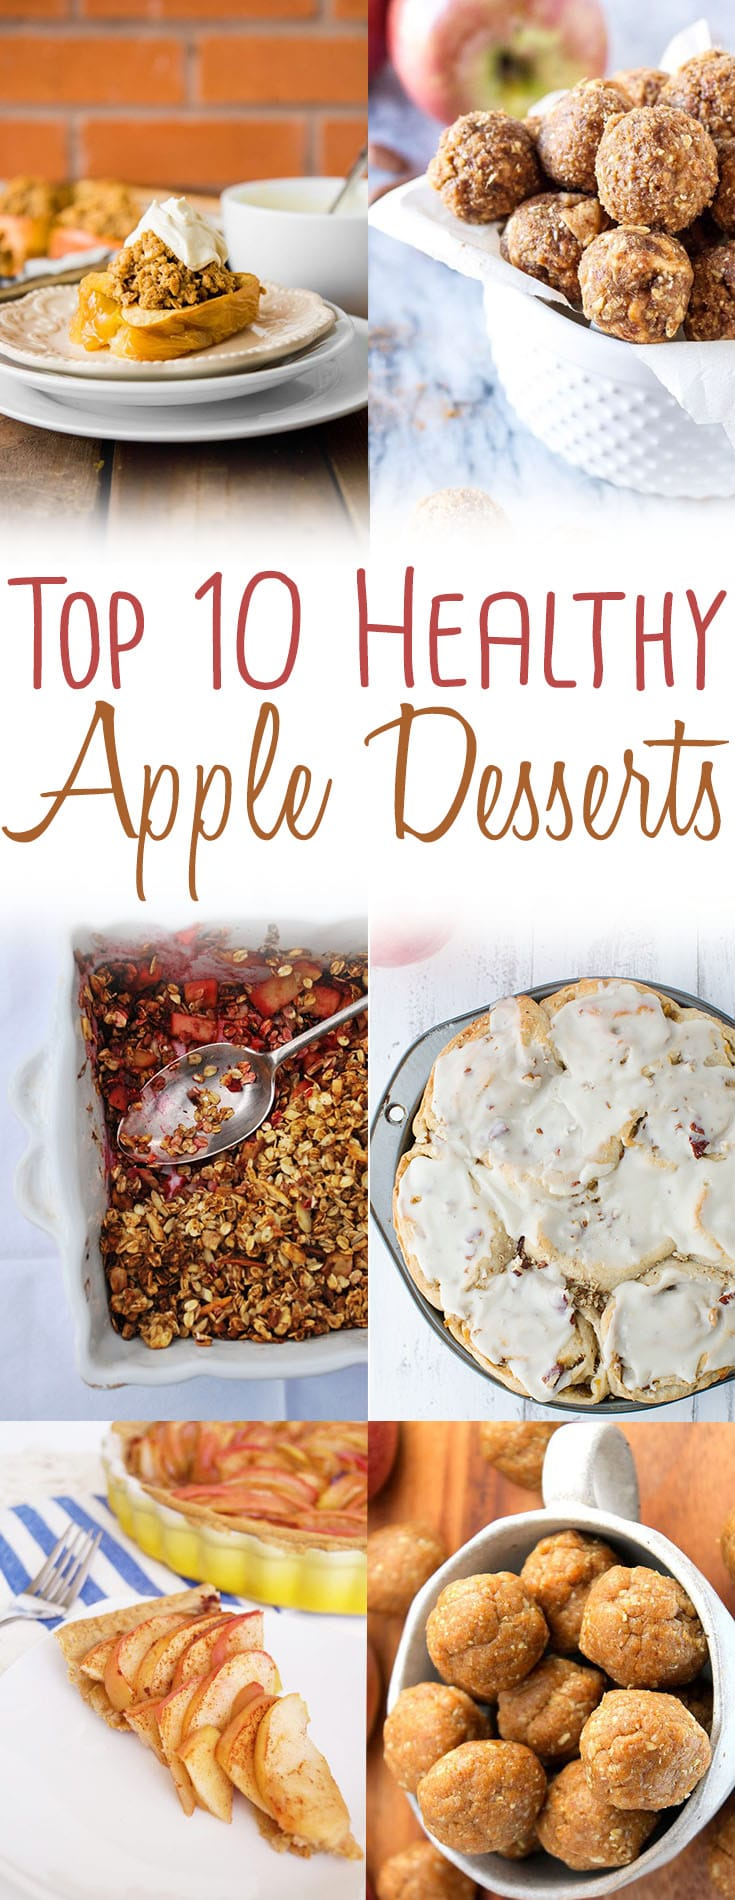 Check out my favourite healthy apple desserts and a the best uses for different apples depending on their flavour and texture.